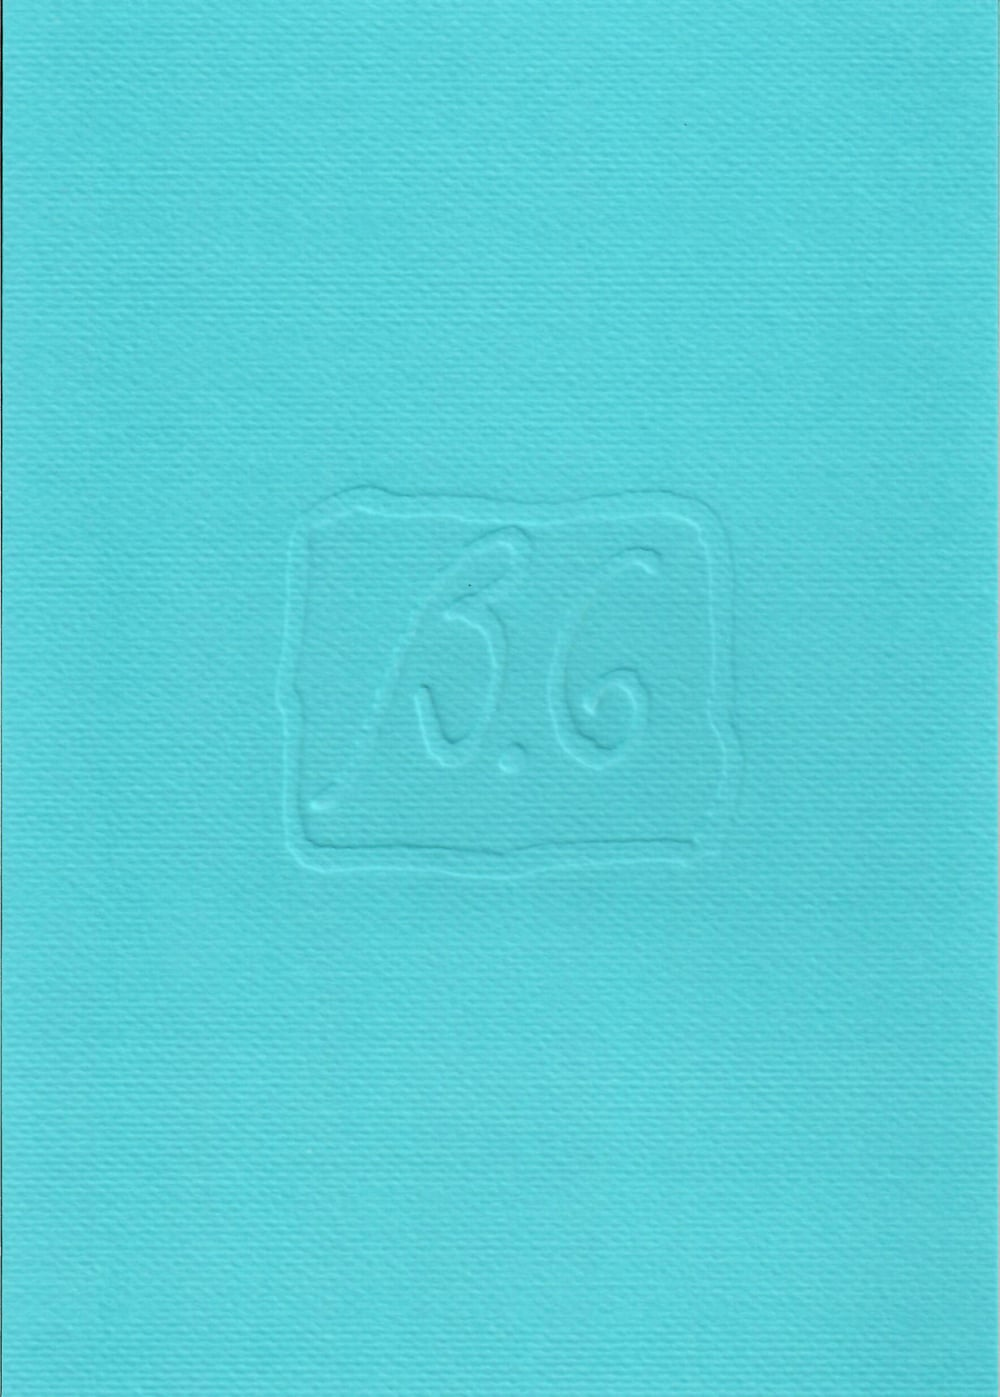 B&G Hydra 1999 Exhibition Cover.jpg